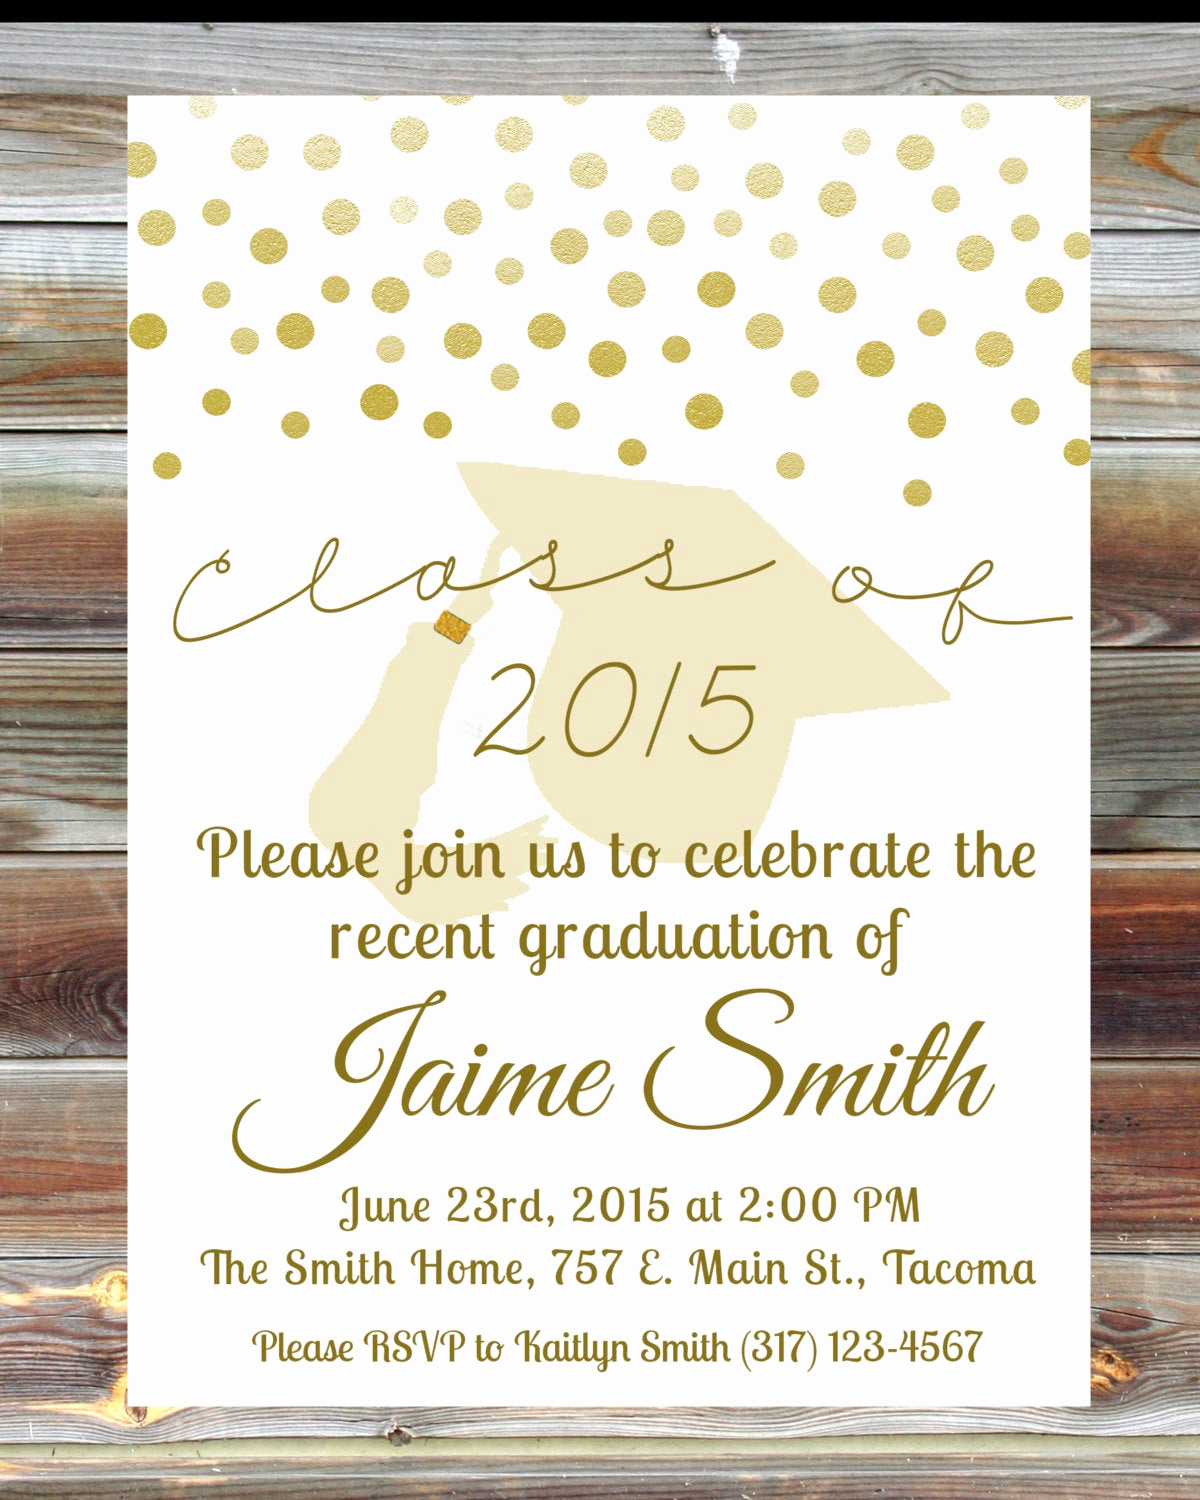 Graduation Open House Invitation Fresh Gold Graduation Open House Invitation Custom Graduation